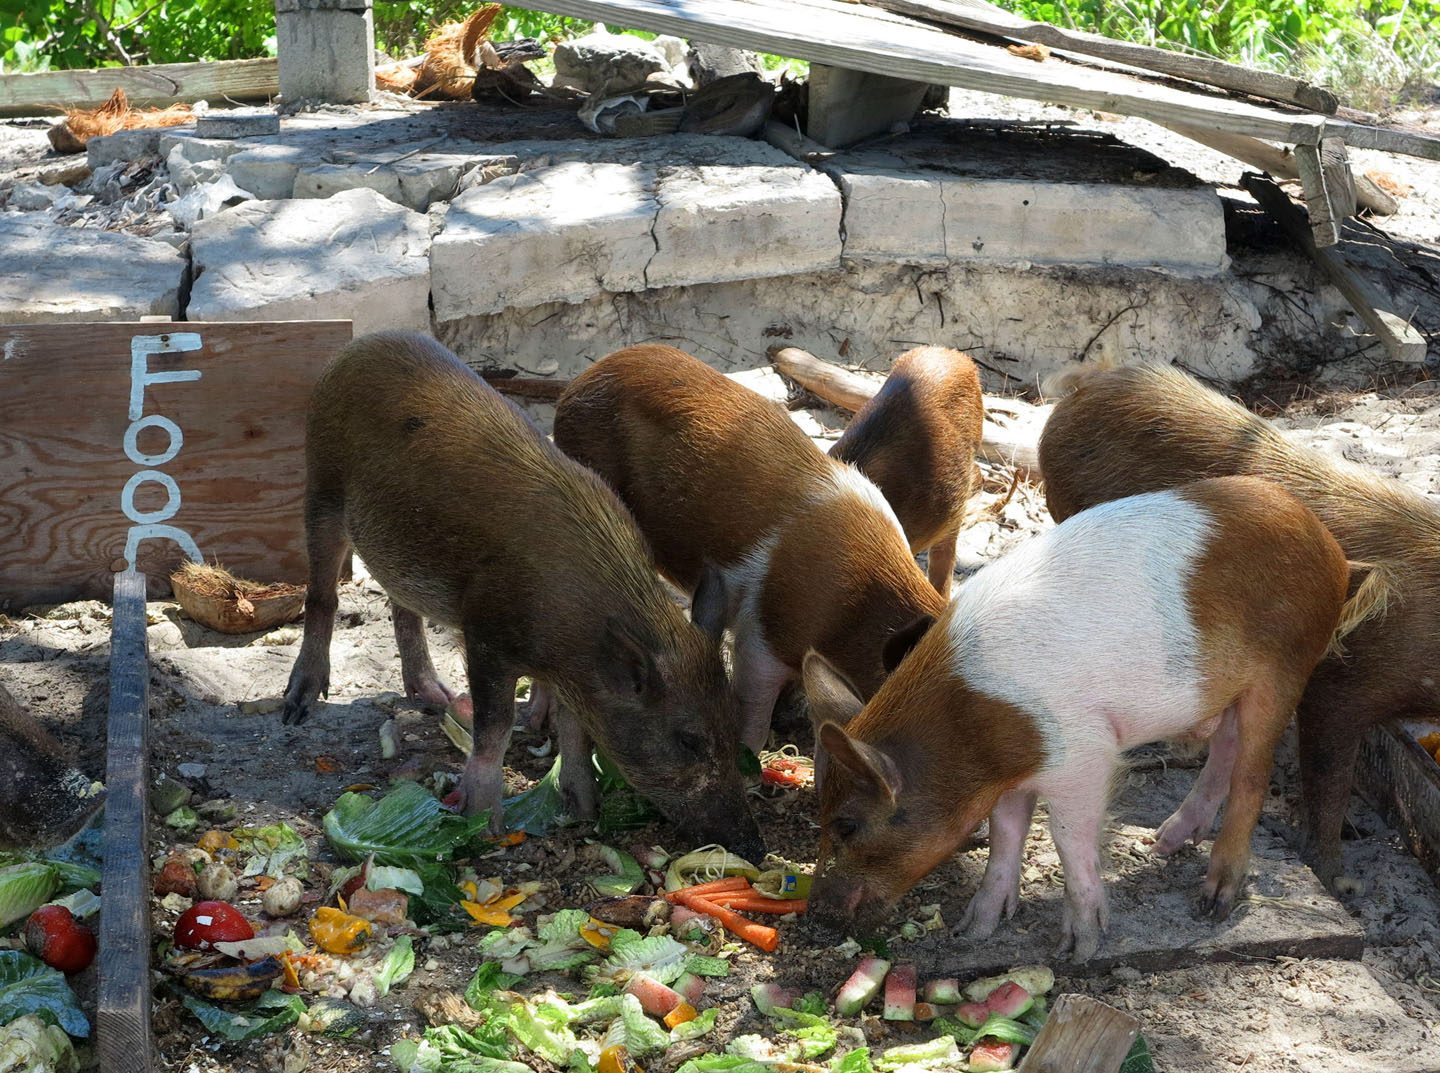 bahamas, abaco, green turtle cay, no name, pigs